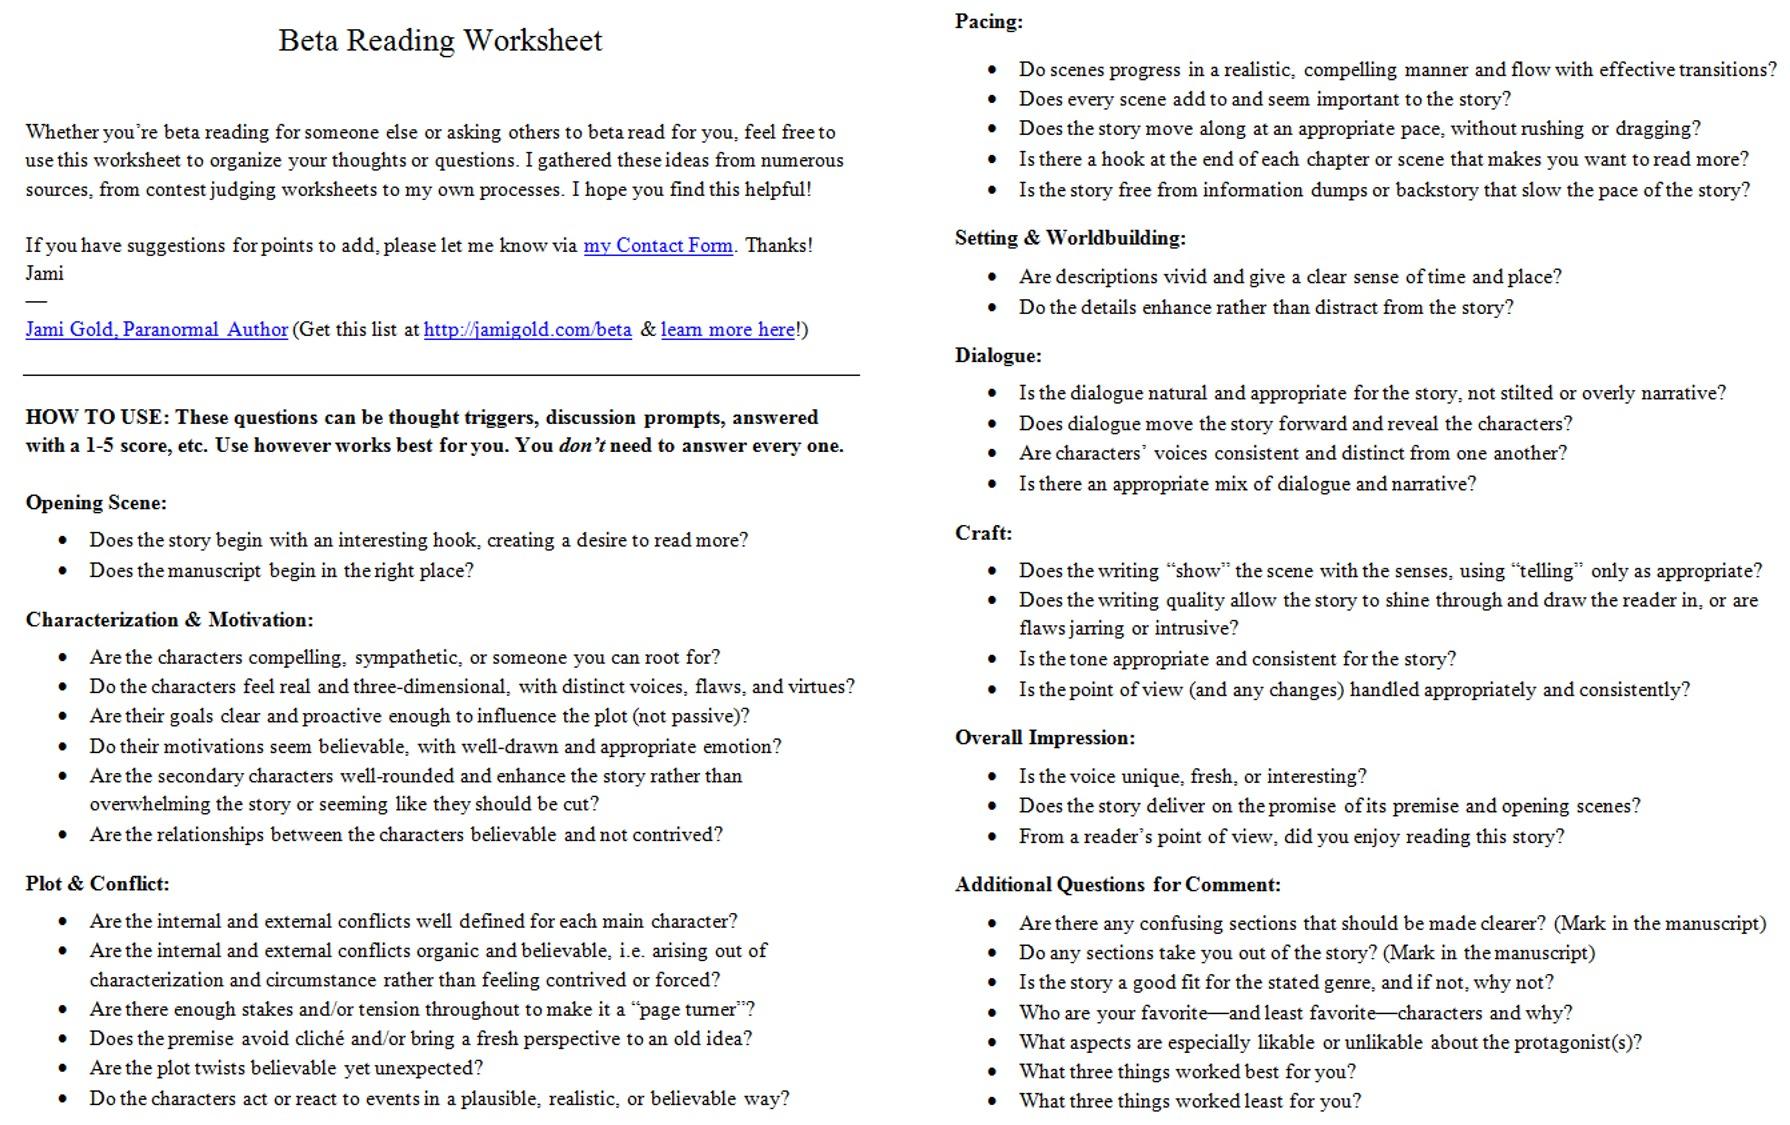 Weirdmailus  Inspiring Worksheets For Writers  Jami Gold Paranormal Author With Likable Screen Shot Of The Twopage Beta Reading Worksheet With Awesome Adverb Worksheet Th Grade Also Examples Of Common And Proper Noun Worksheets In Addition St Standard English Worksheet And Classical Music Worksheets As Well As Maths Measuring Worksheets Additionally Letter P Worksheets Preschool From Jamigoldcom With Weirdmailus  Likable Worksheets For Writers  Jami Gold Paranormal Author With Awesome Screen Shot Of The Twopage Beta Reading Worksheet And Inspiring Adverb Worksheet Th Grade Also Examples Of Common And Proper Noun Worksheets In Addition St Standard English Worksheet From Jamigoldcom